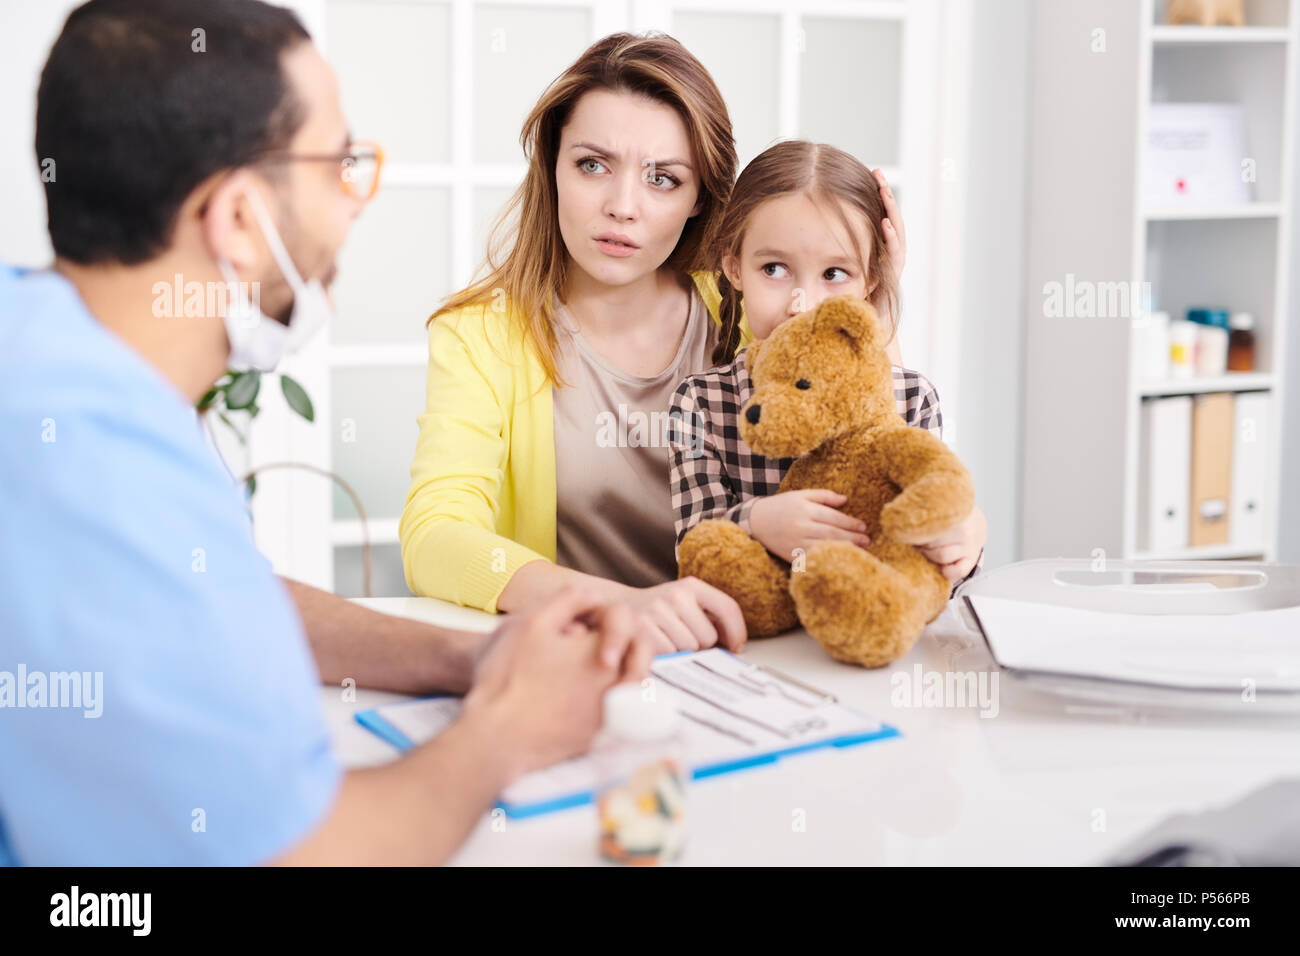 Concerned Mother in Doctors Office - Stock Image